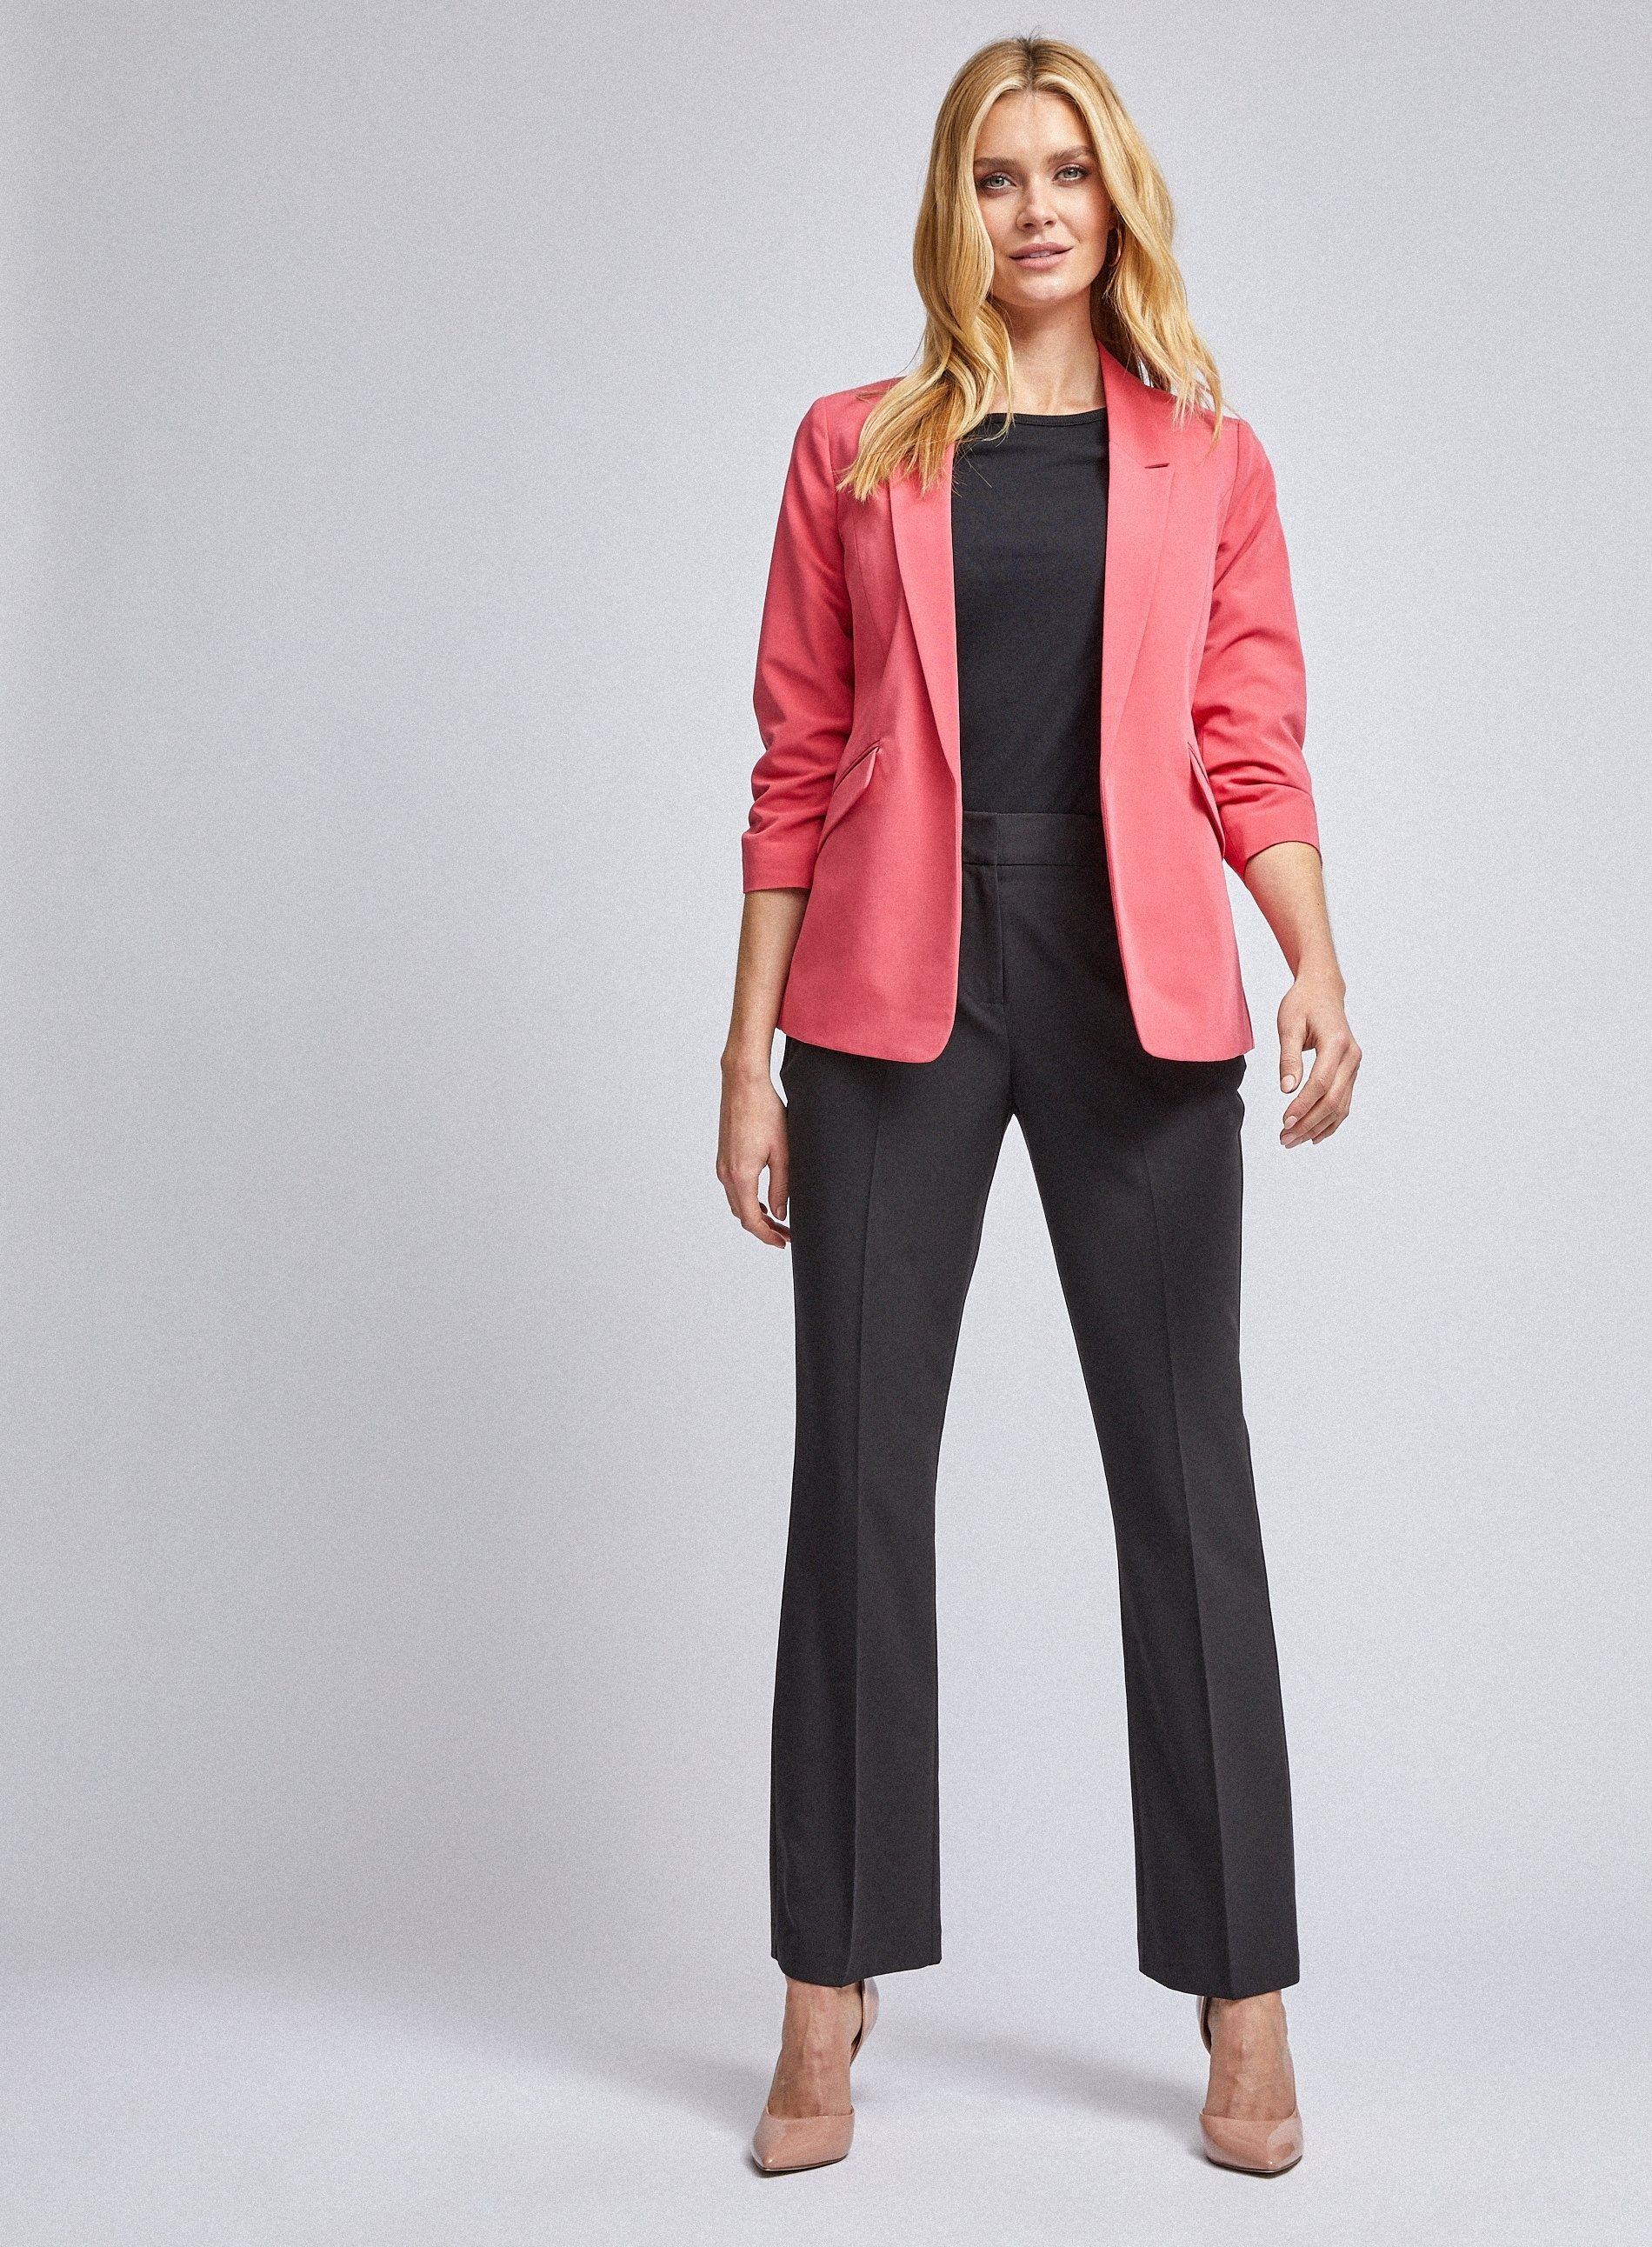 Dorothy Perkins Womens Pink 3/4 Ruched Sleeve Blazer Jacket Tailored Outerwear